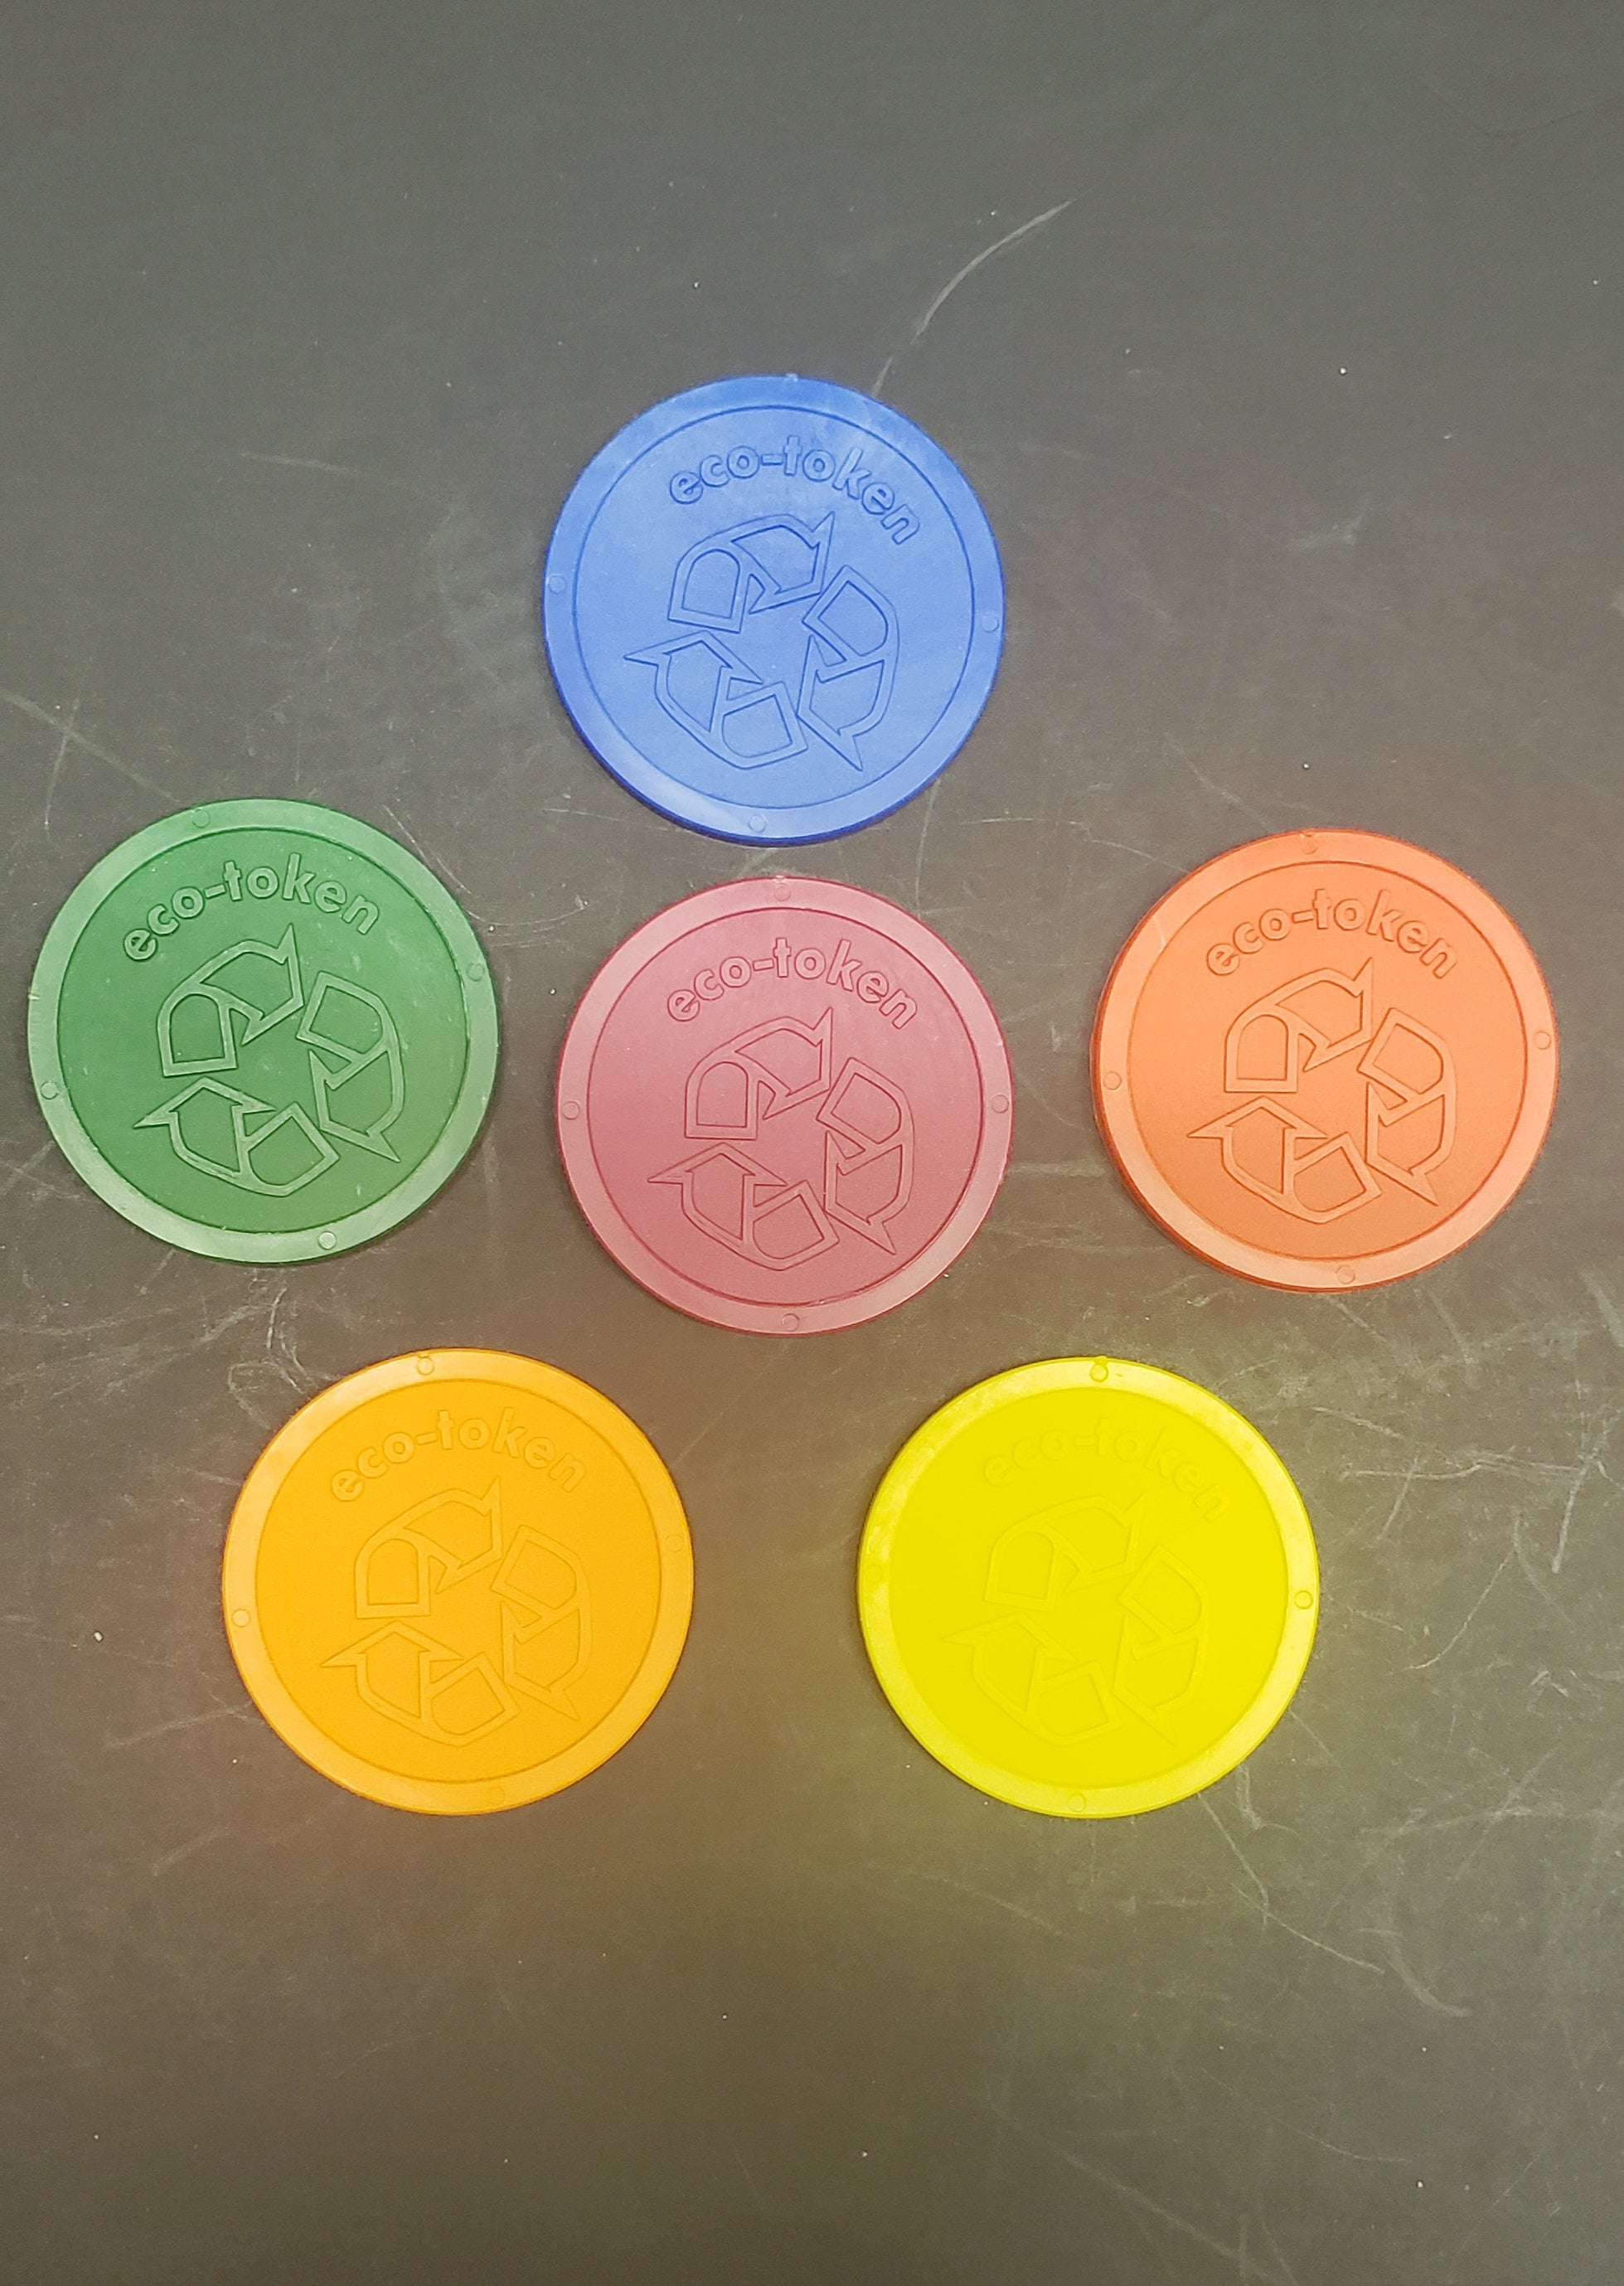 Biodegradable Eco Tokens